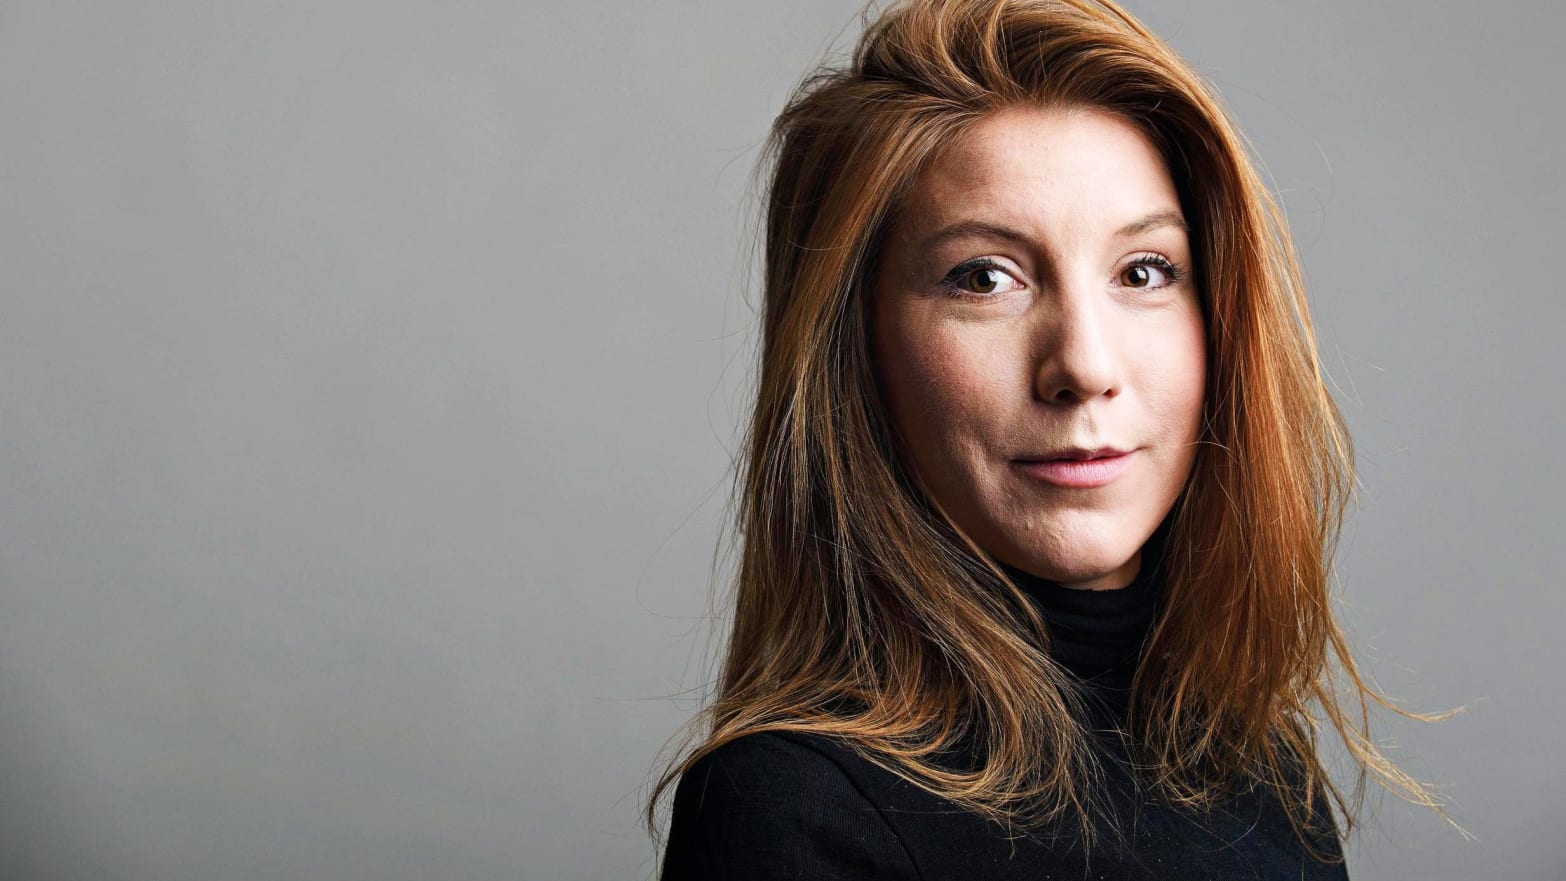 Kim Wall, a Lone Reporter Decapitated and Dismembered